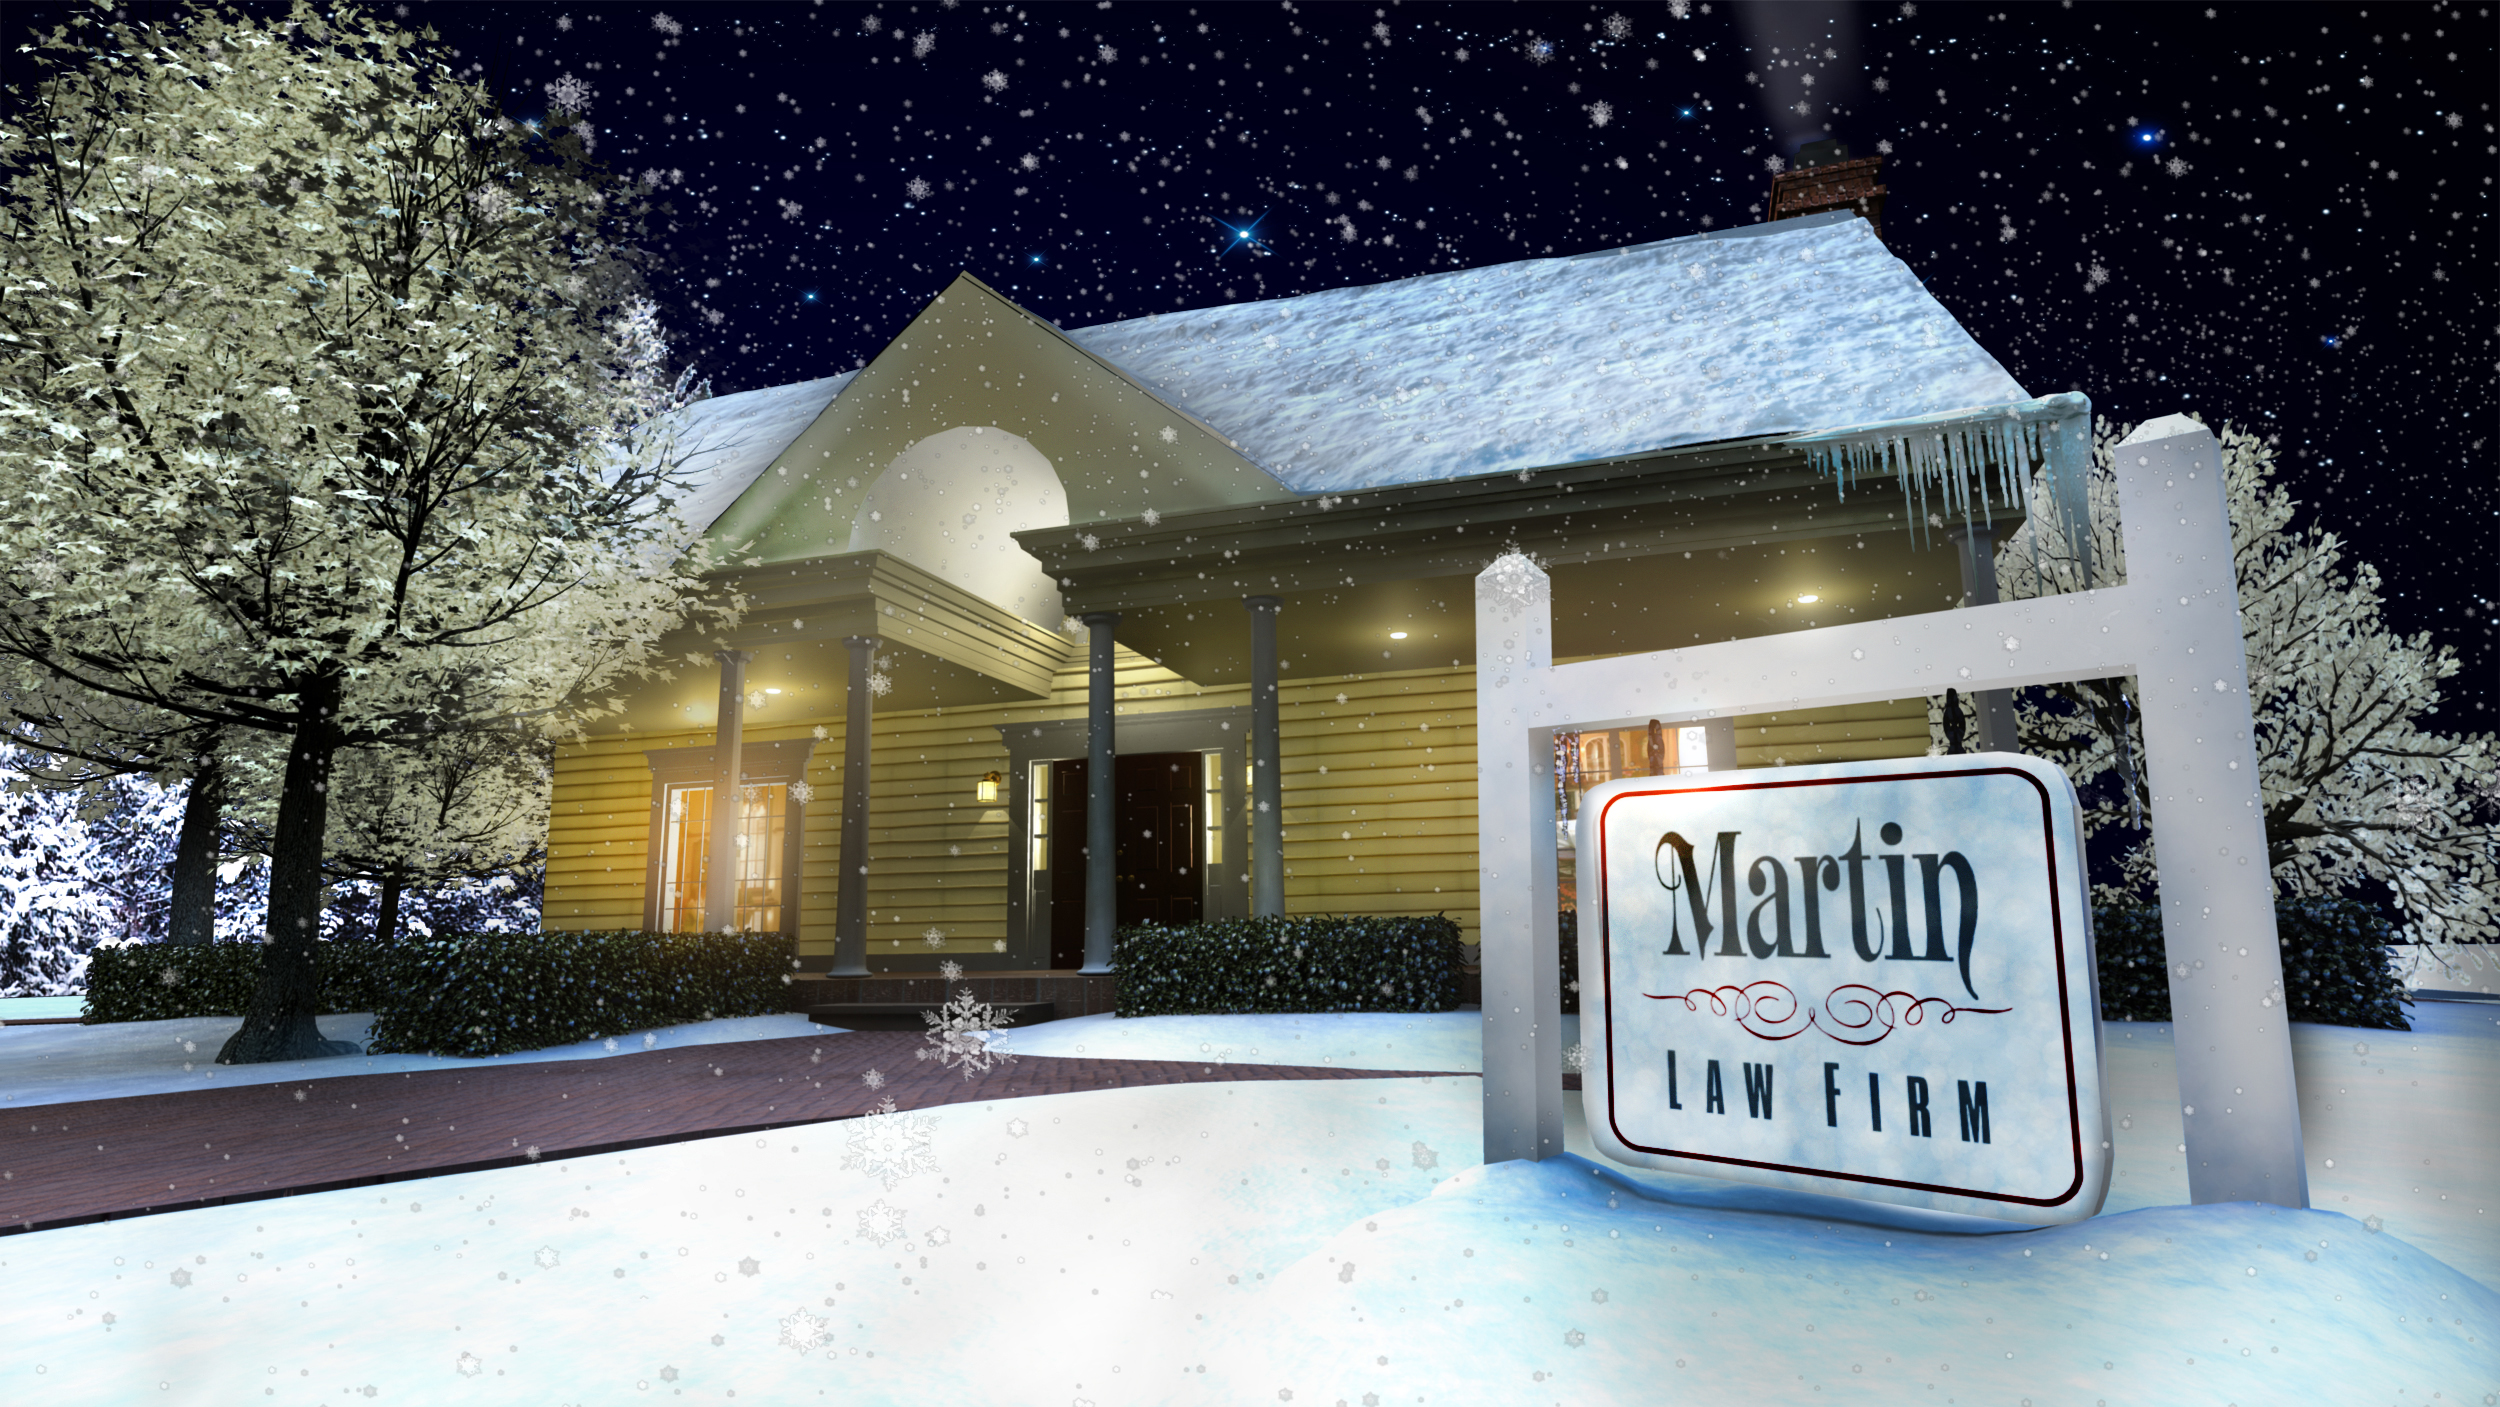 martin law firm in winter